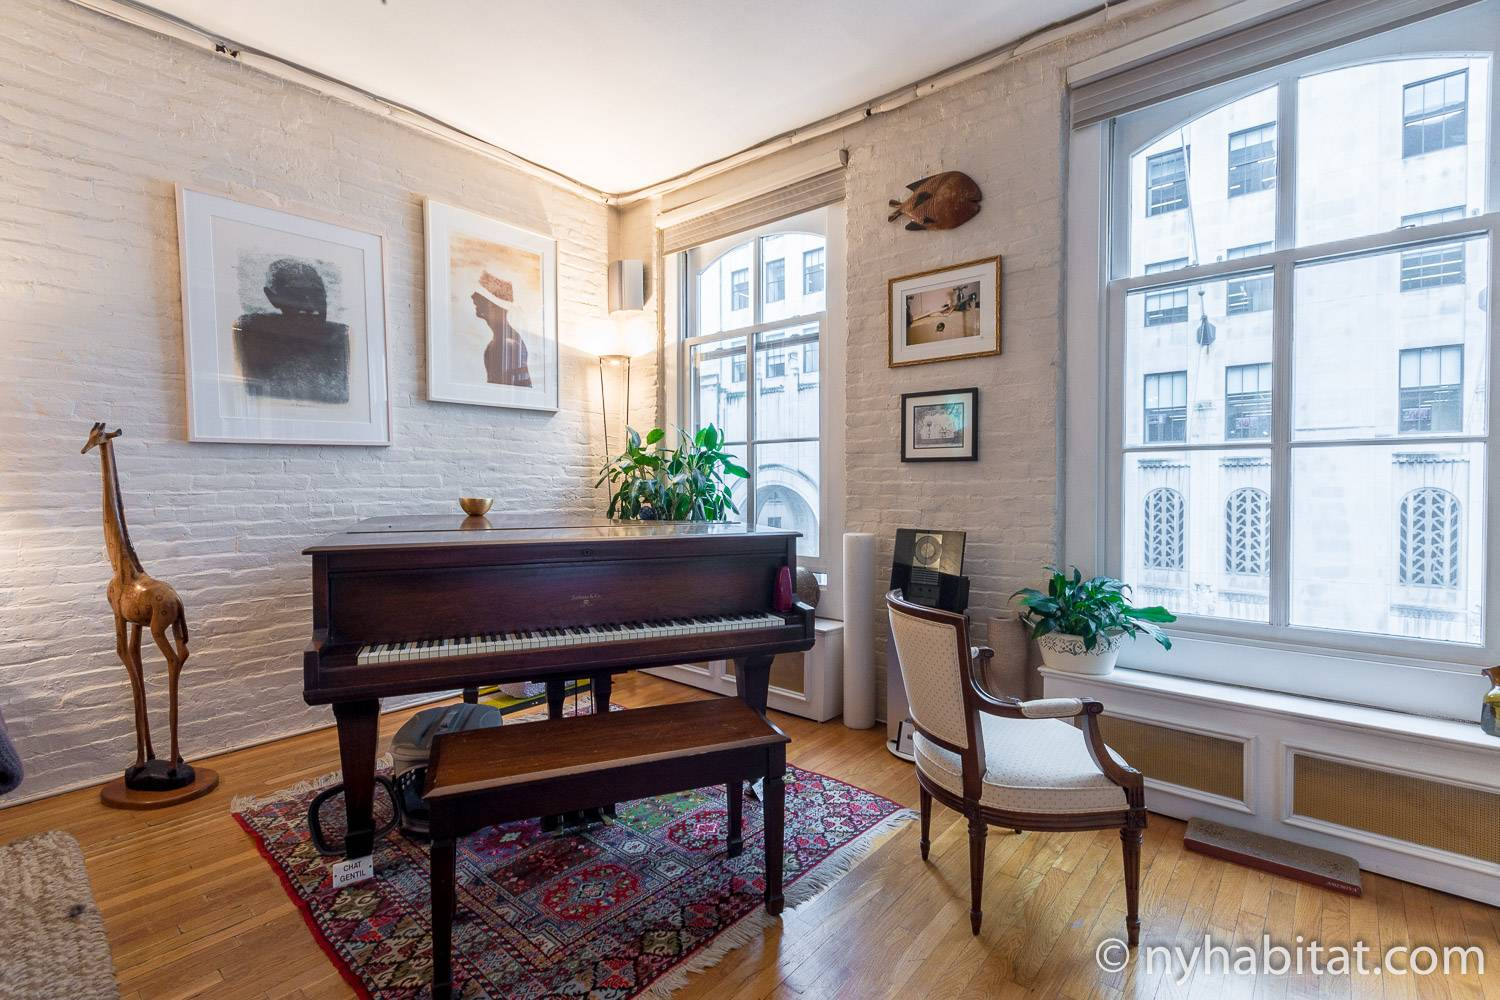 manhattan apartments rented for tourist experience best interior design nyc apartment Image of living area in NY-12330 with grand piano, windows and artwork.